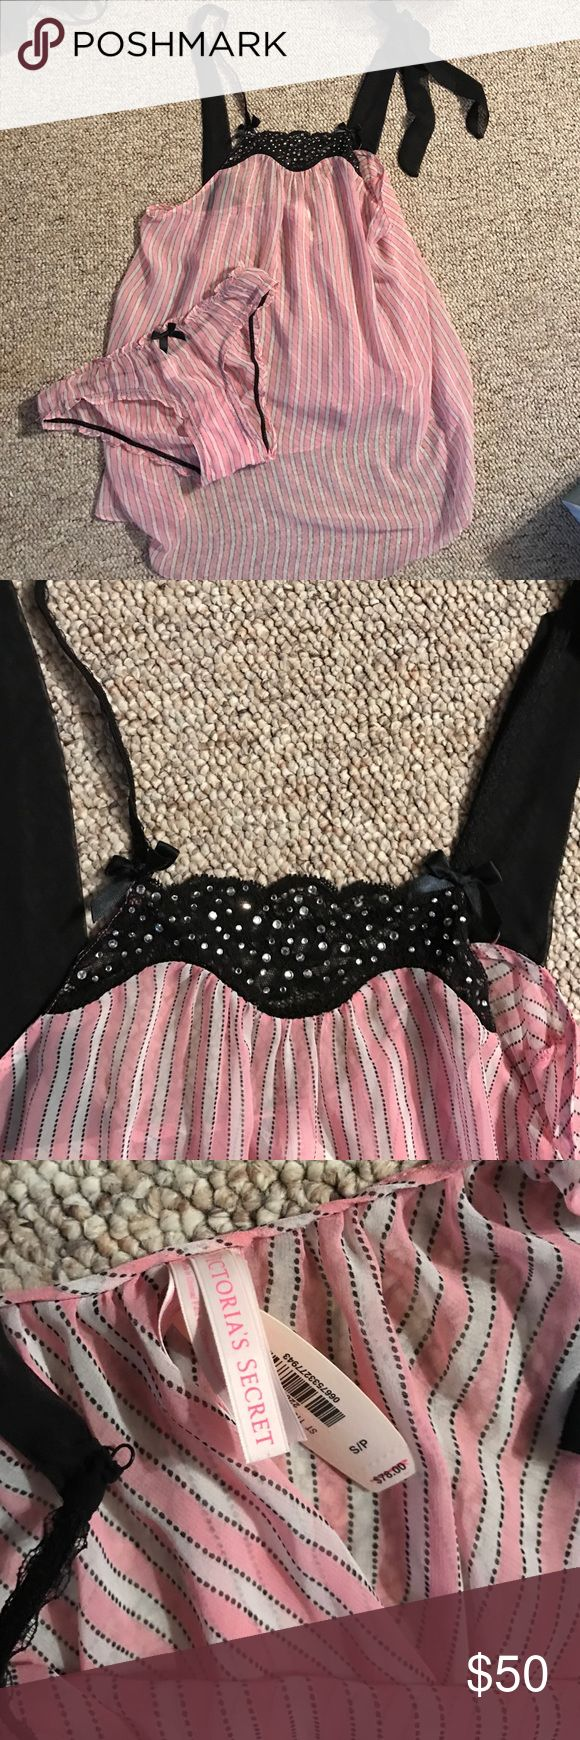 Victoria'sSecret baby doll embellished pink  black Gorgeous set brand-new never worn with tags attached Victoria's Secret Intimates & Sleepwear Chemises & Slips